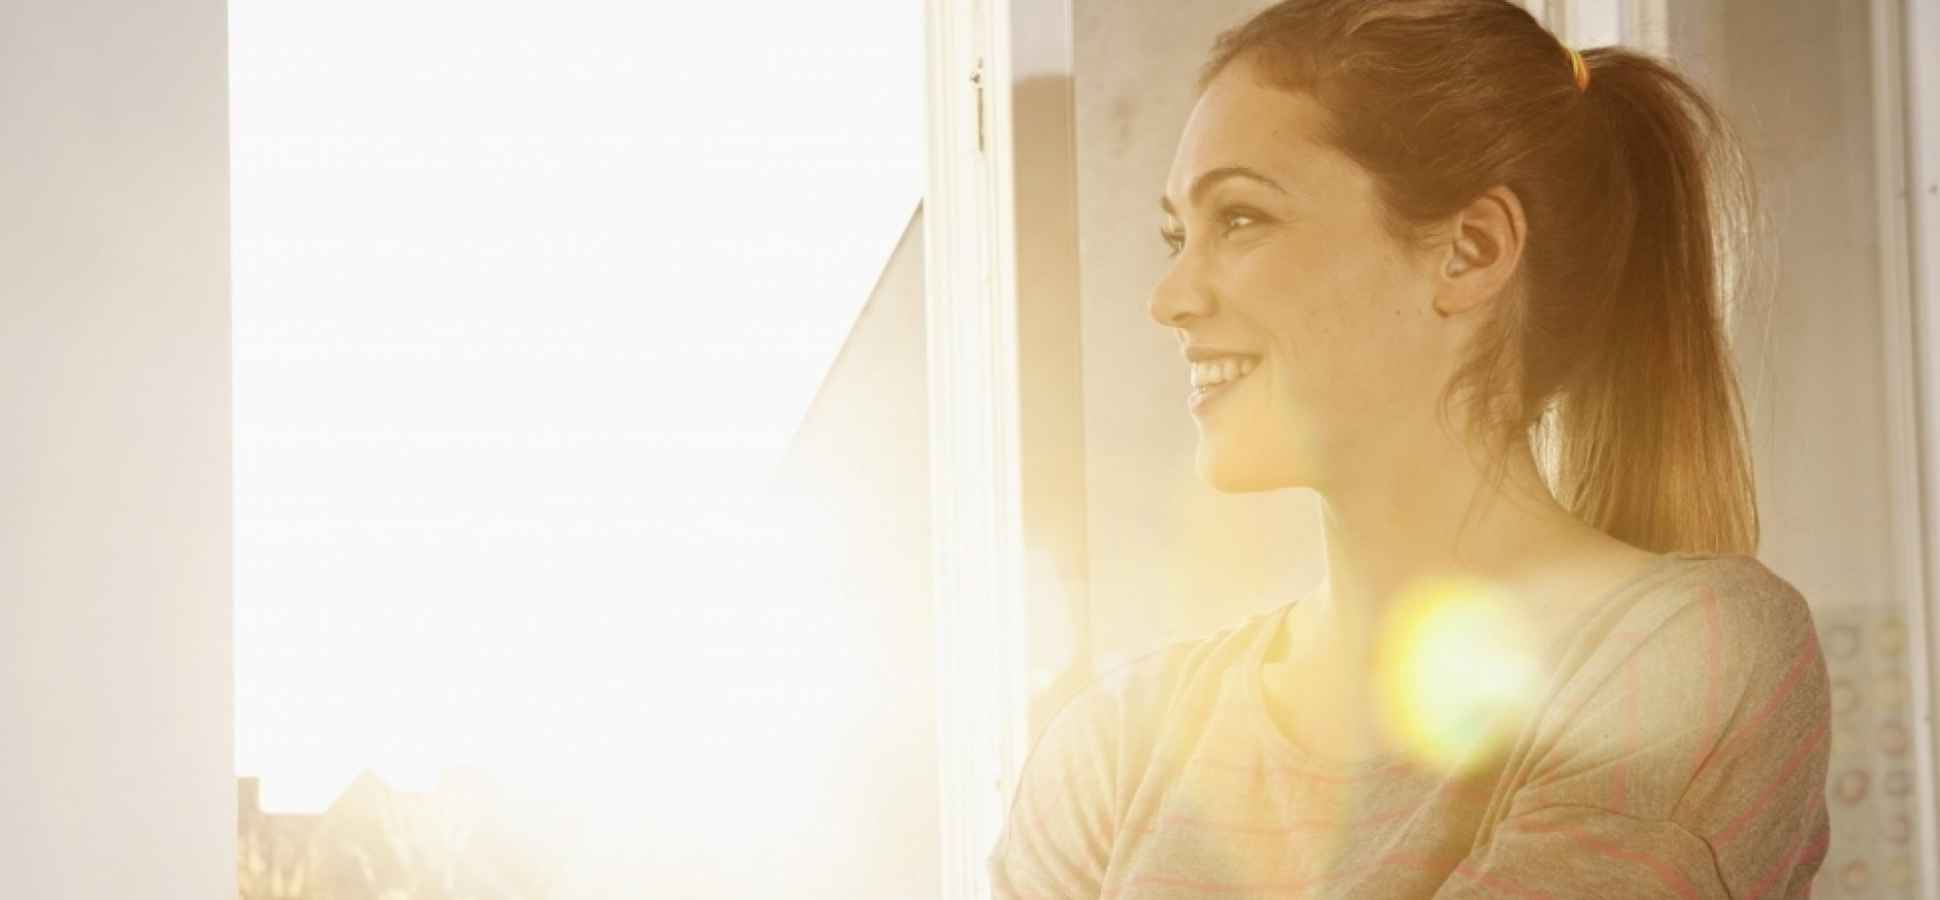 Be Genuinely Confident: 8 Traits the Most Self-Assured People Share